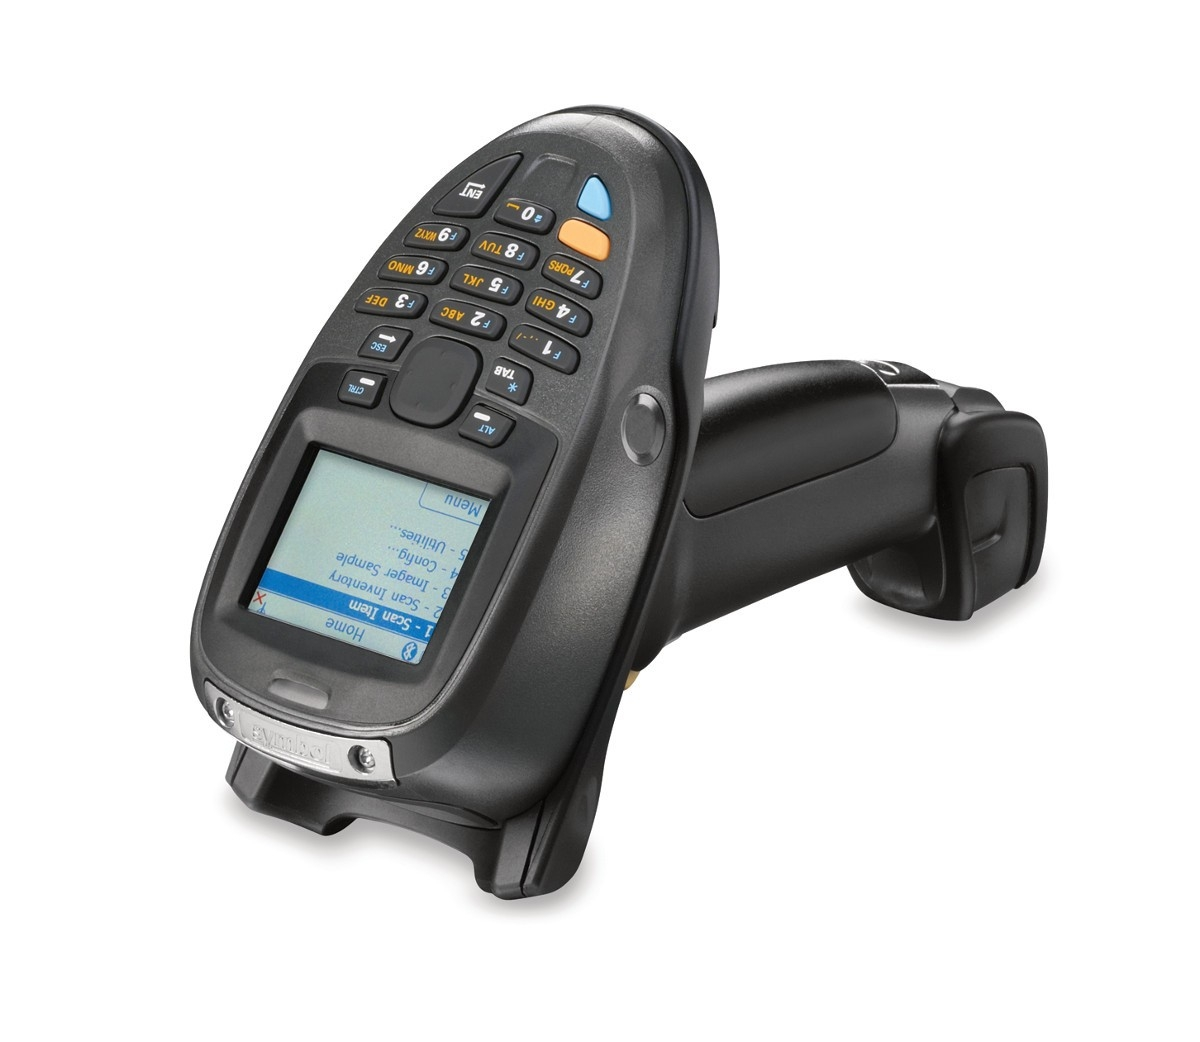 MT2000 Mobile Terminals Scanner Barcode Scanners in Www.mindwareindia.com